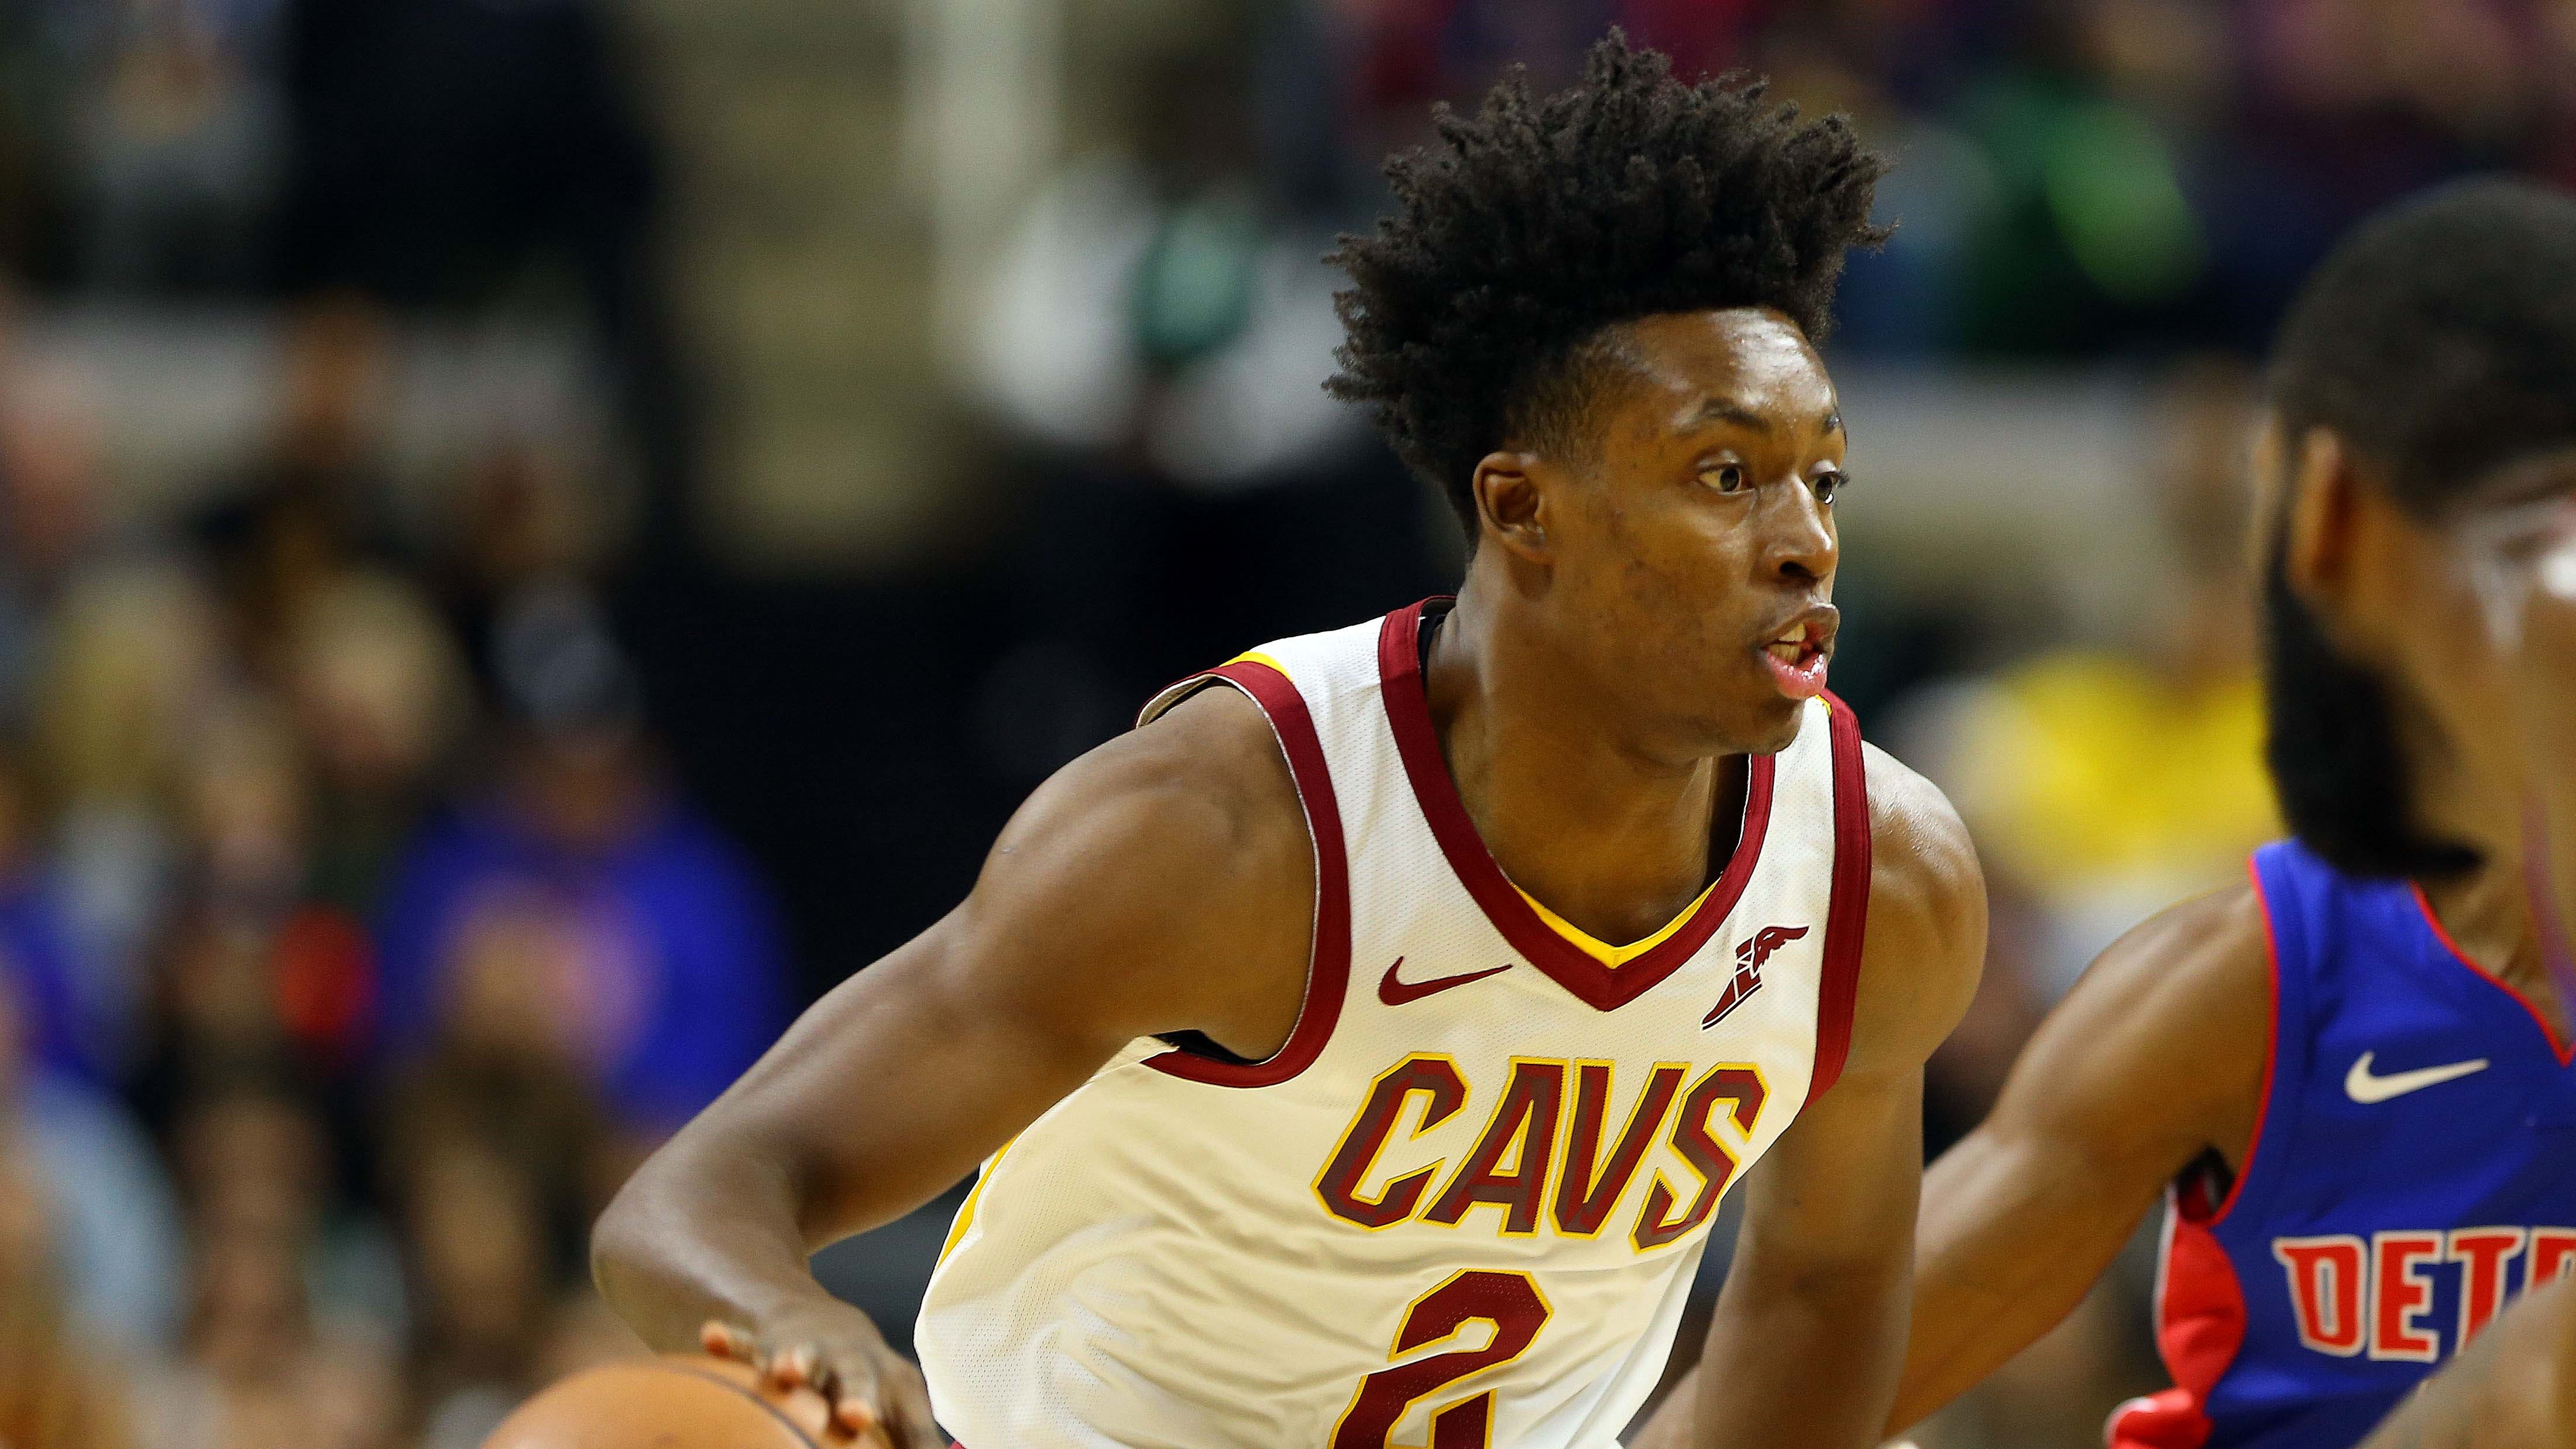 Pro game starting to slow down for Cleveland Cavaliers ...